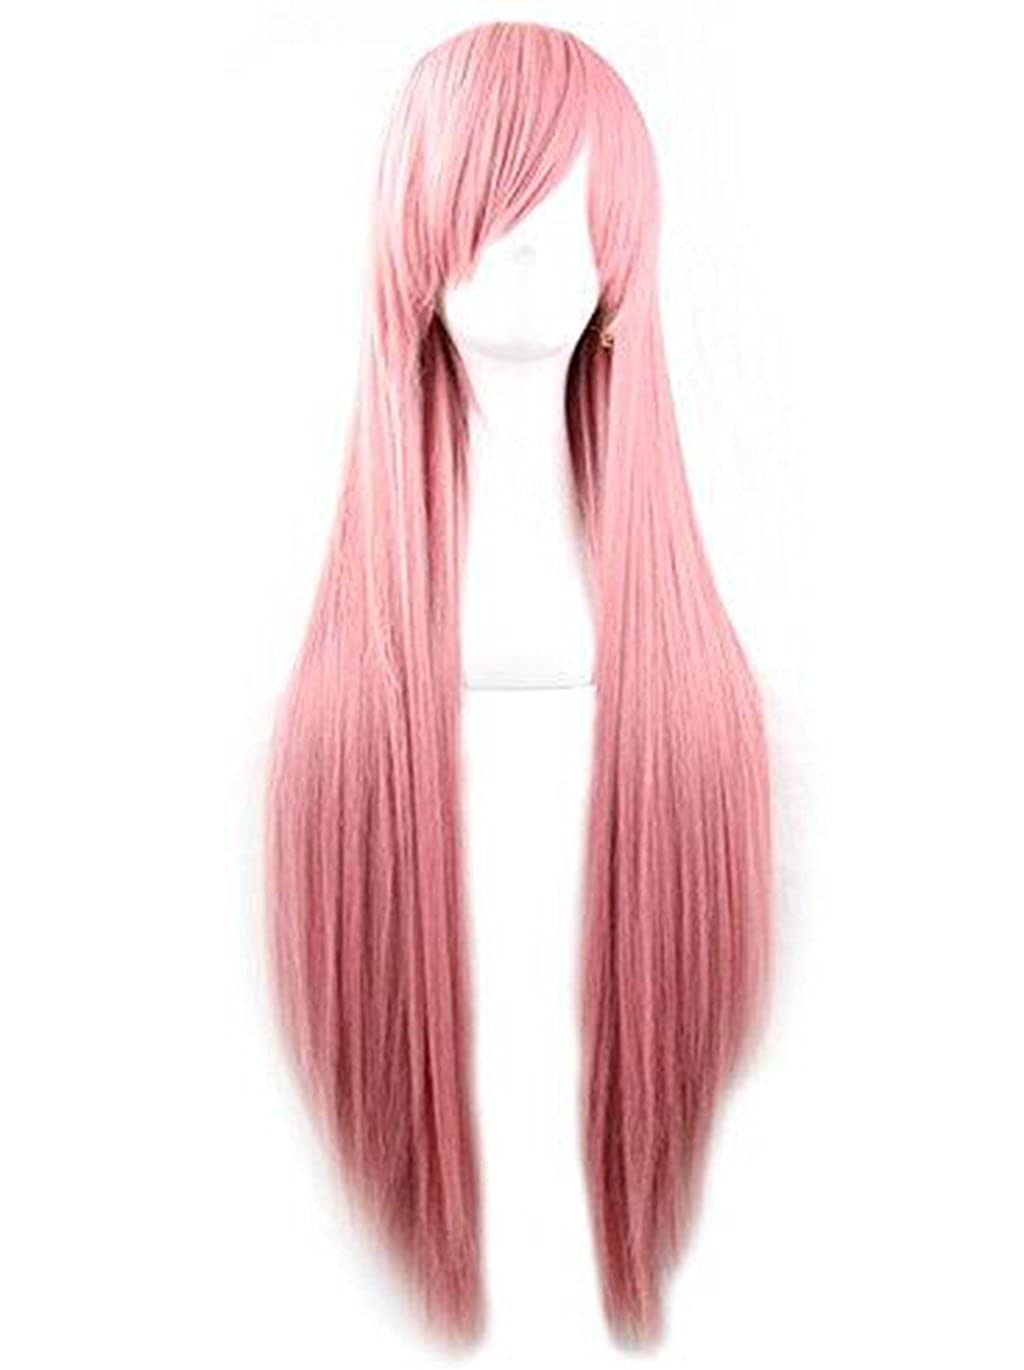 3f309afb808 Amazon.com  Rbenxia 32   Women s Cosplay Wig Hair Wig Long Straight Costume  Party Full Wigs Pink  Beauty